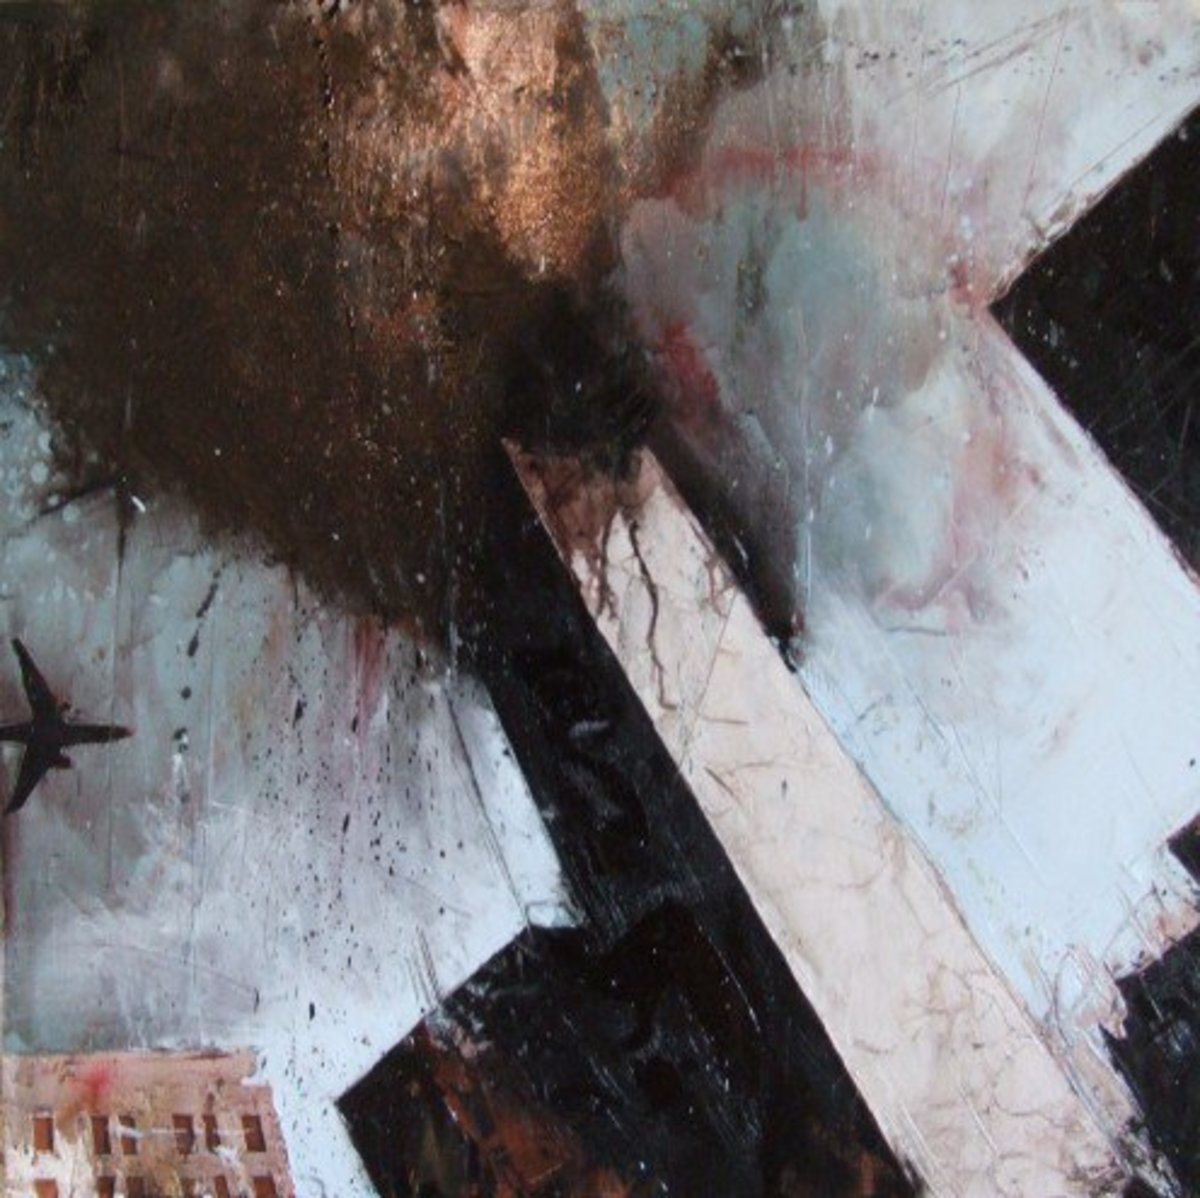 Vanity Fair by Guy Denning.  Exhibited at the 9/11 show Red Propeller, Kingsbridge.